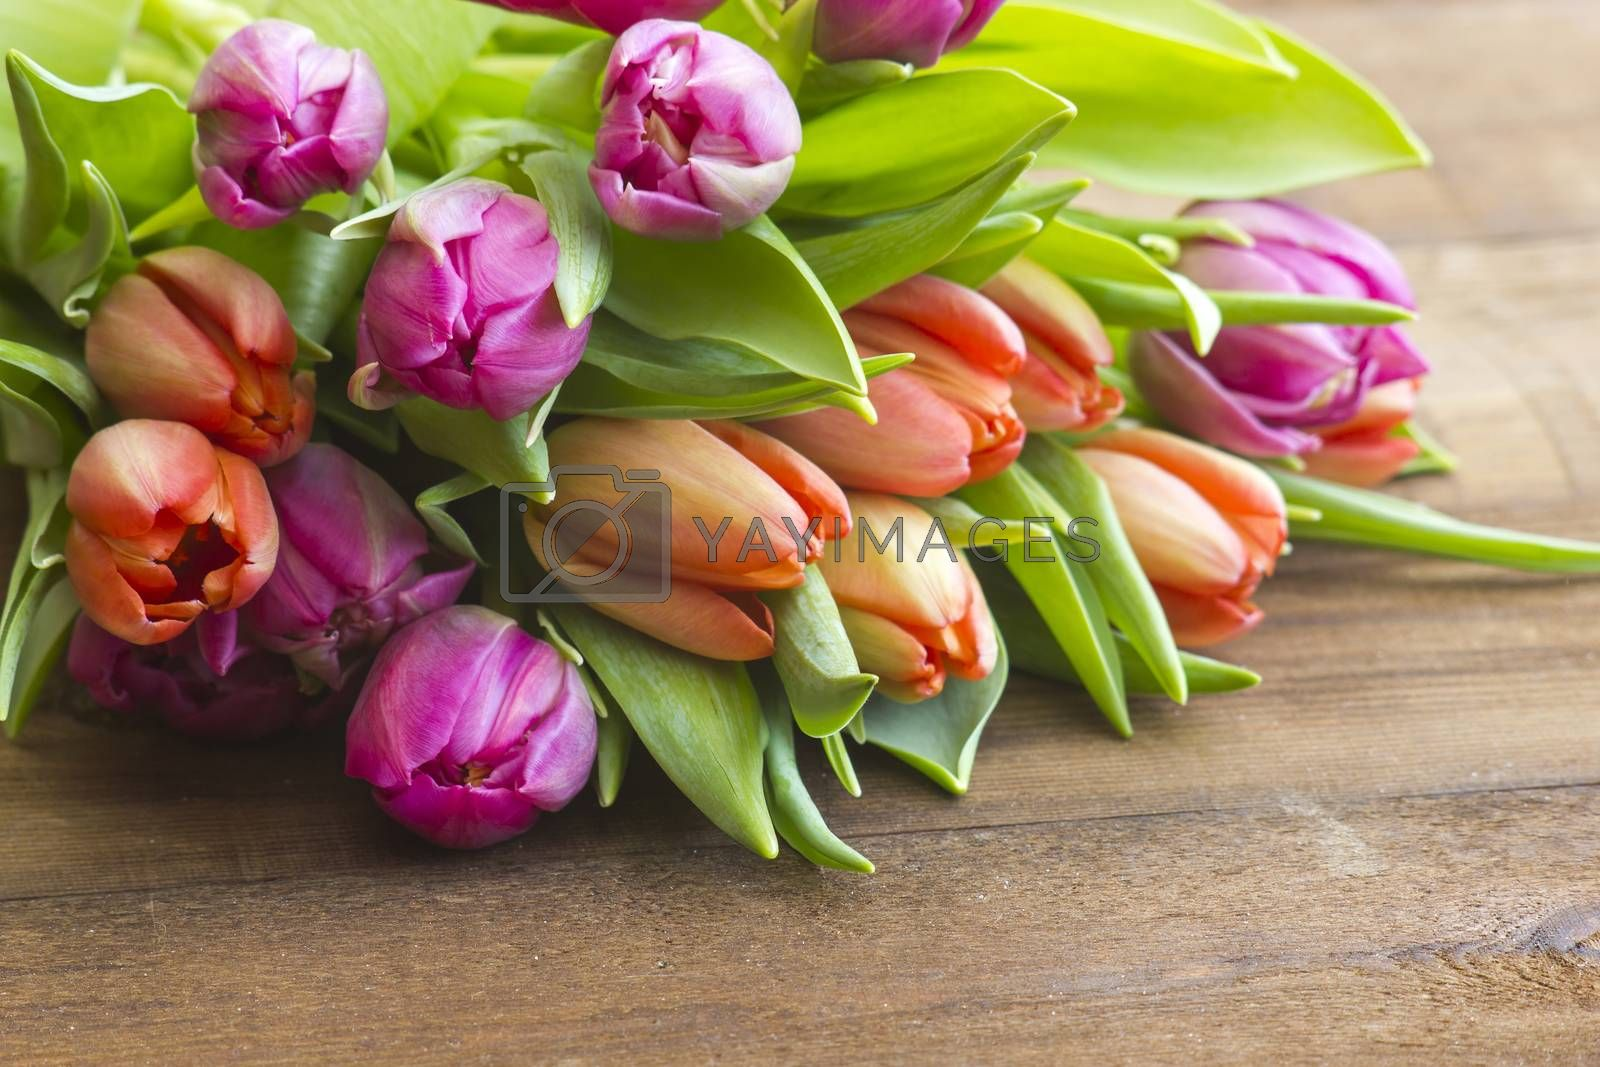 colourful tulips on wooden background